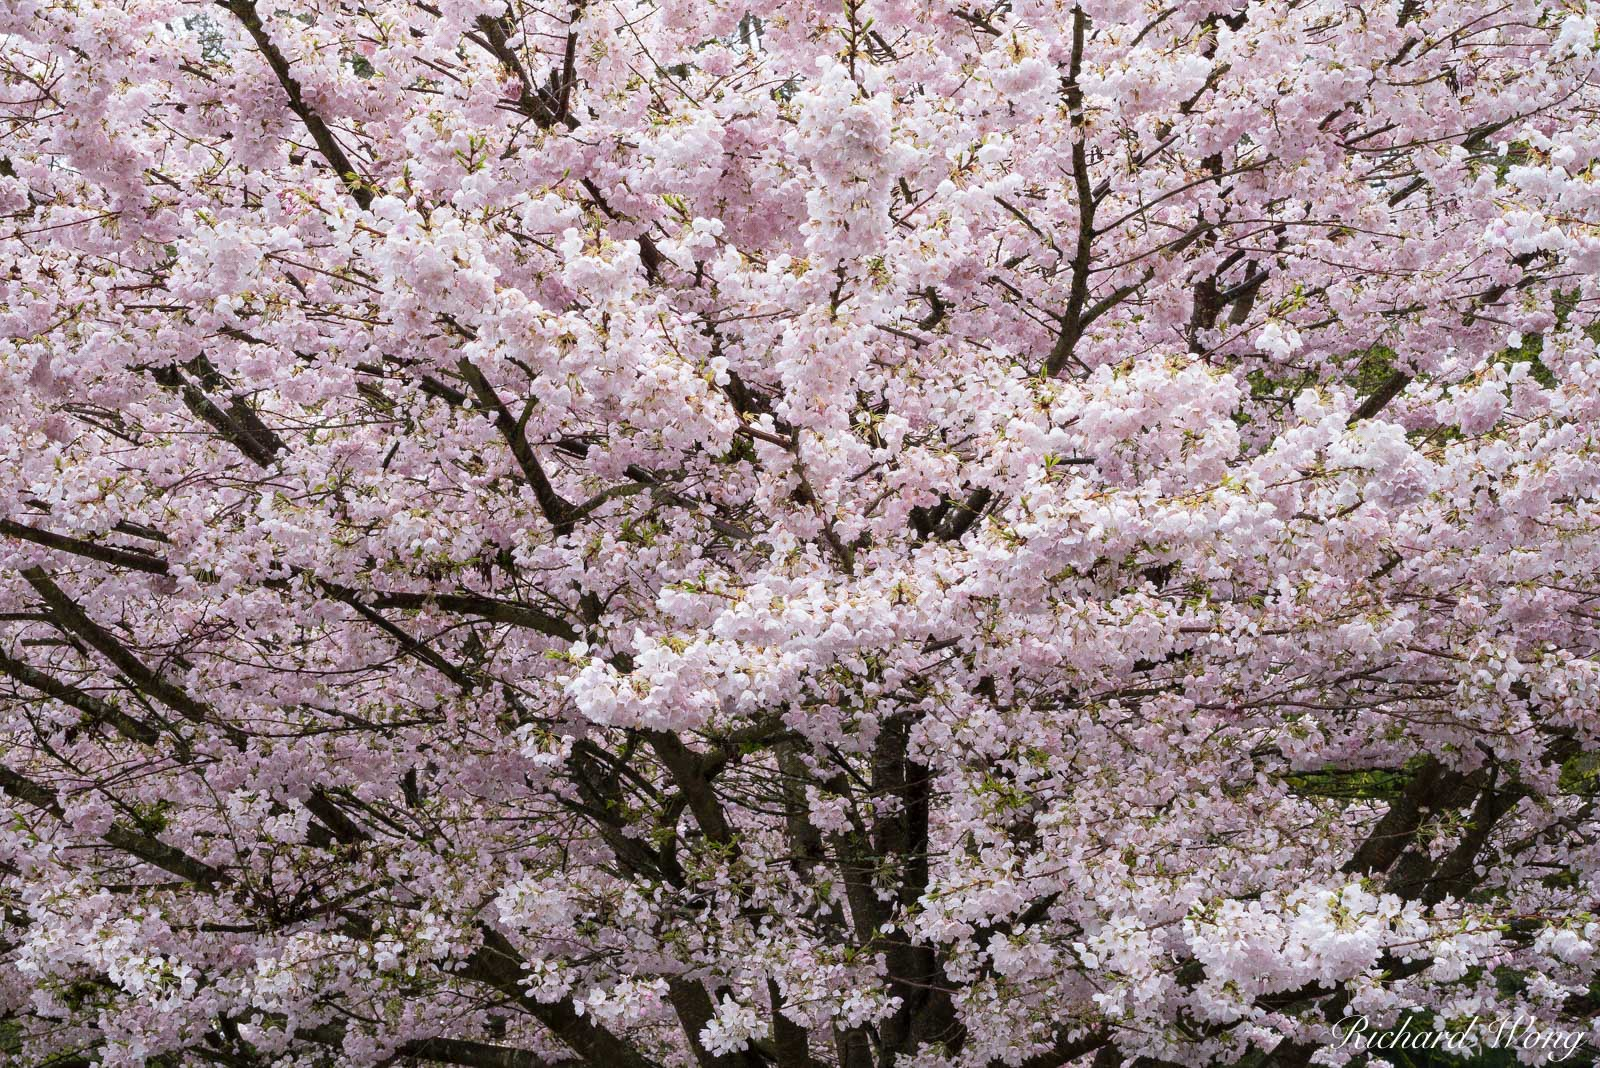 Stanley Park Cherry Tree Blossoms, Vancouver, B.C., Canada, photo, photo